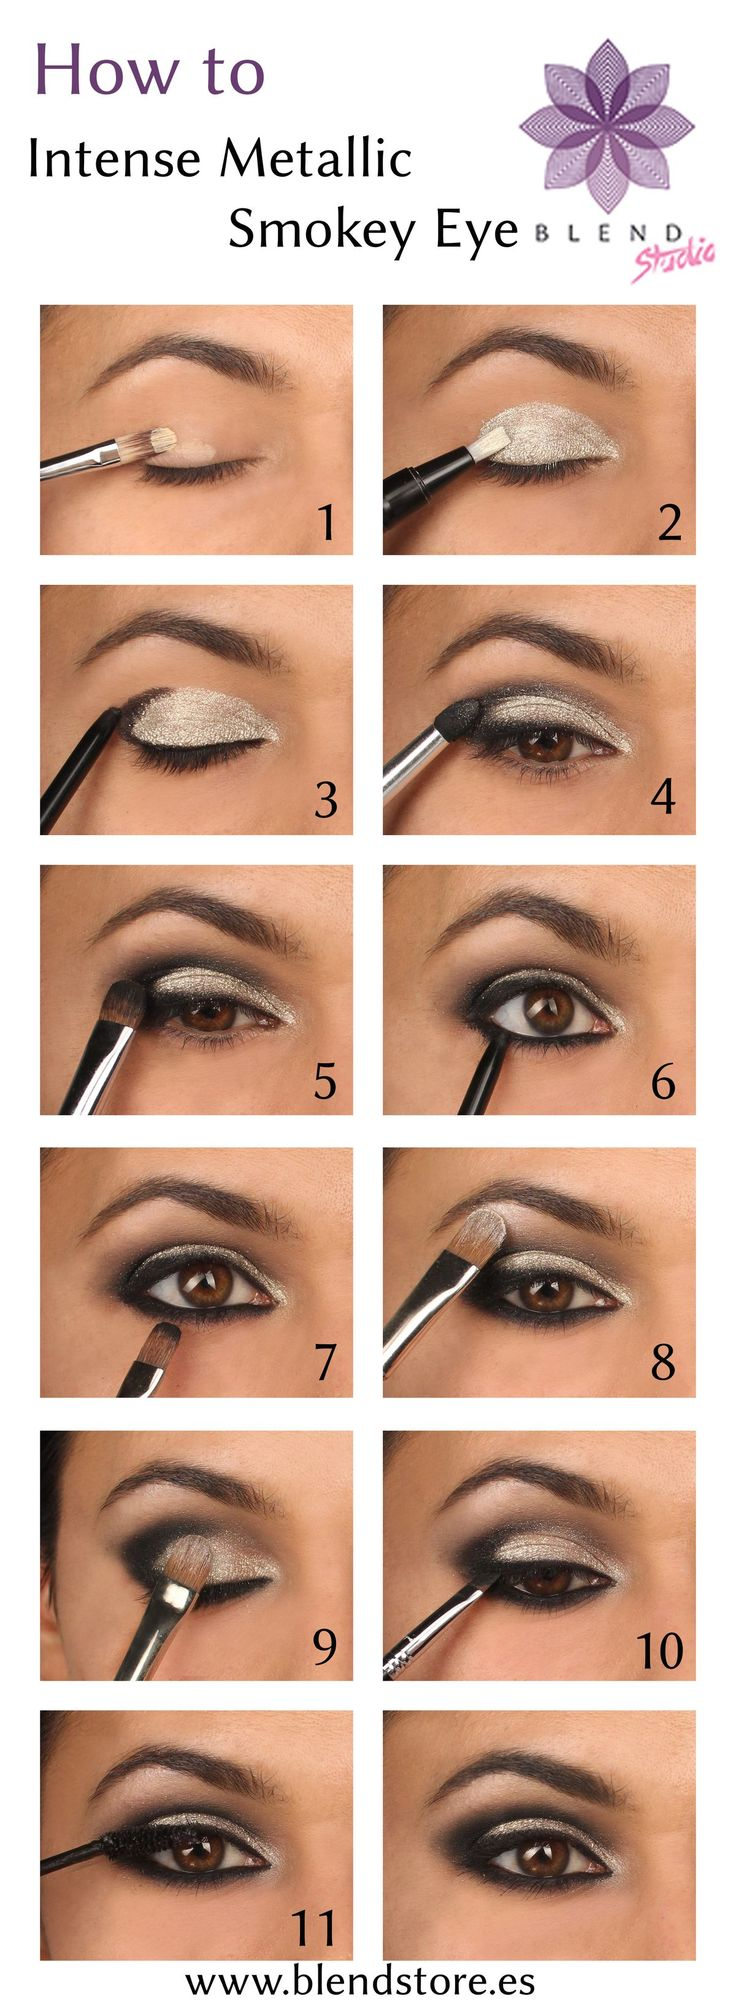 I have been doing metallic Smokey eyes a lot recently! I think it is a gorgeous and bold look for the winter...pair it with a red lip and you are ready for a party!